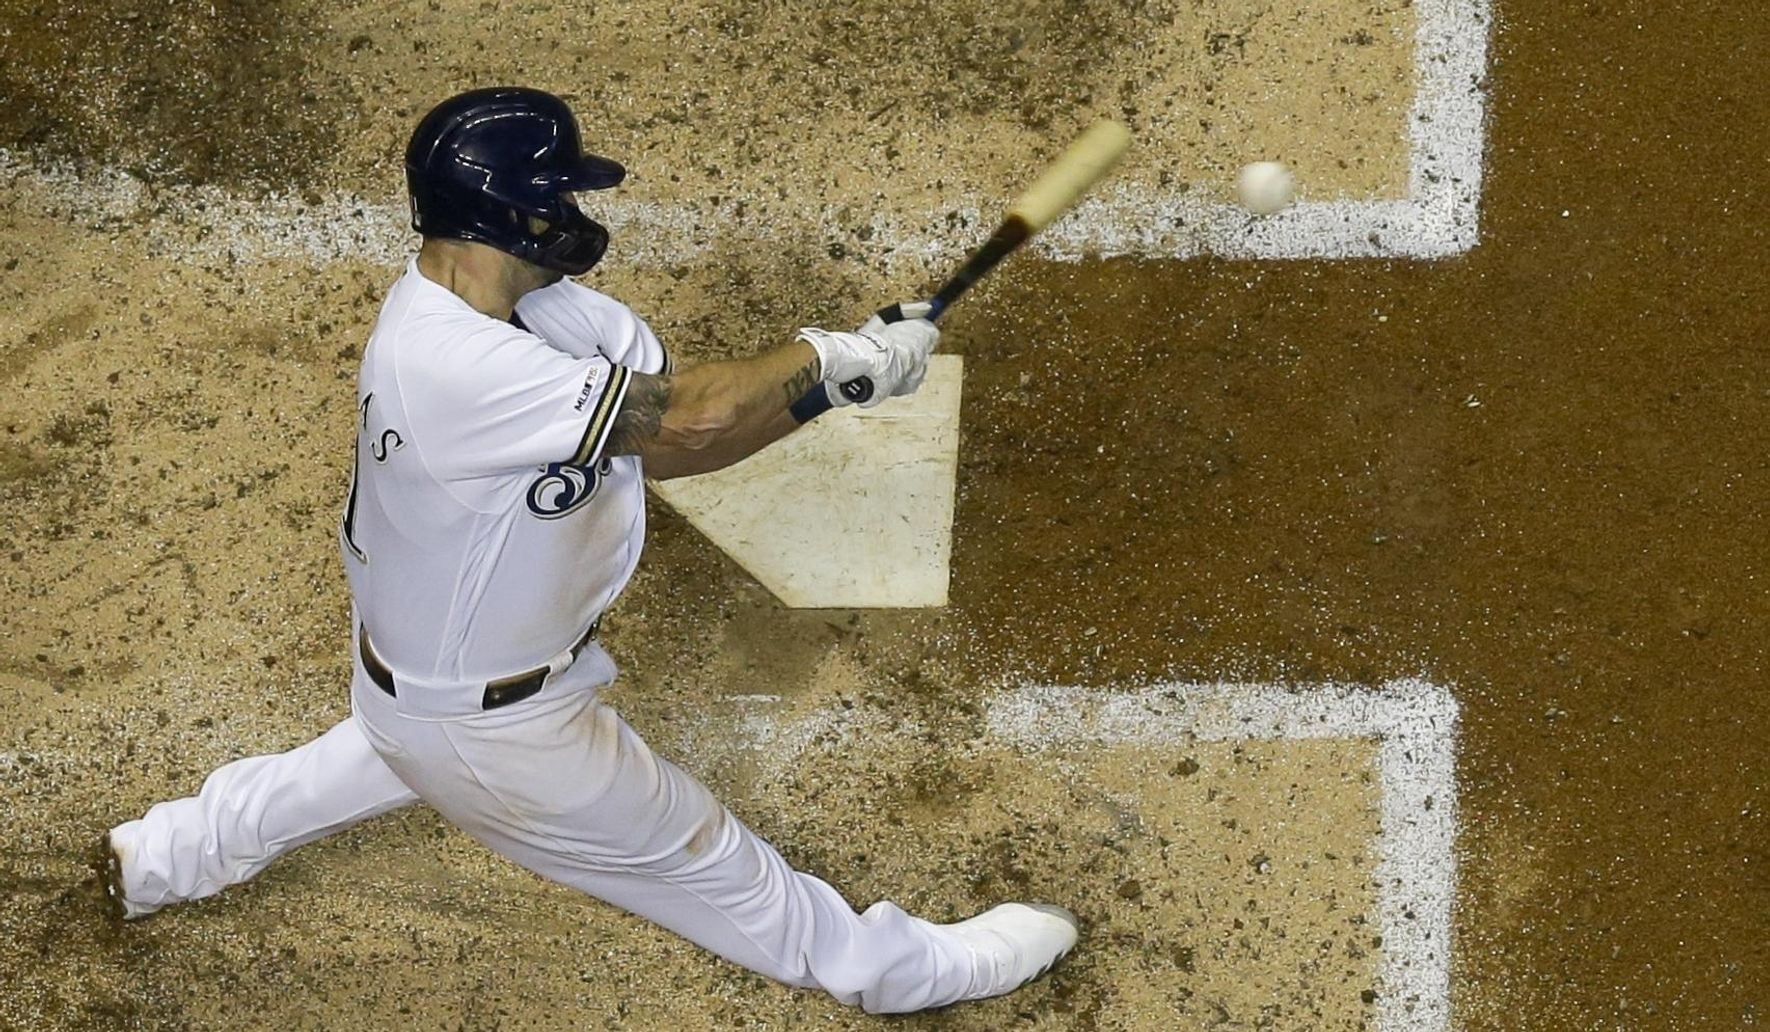 Padres_brewers_baseball_83707_c0-148-1706-1142_s1770x1032